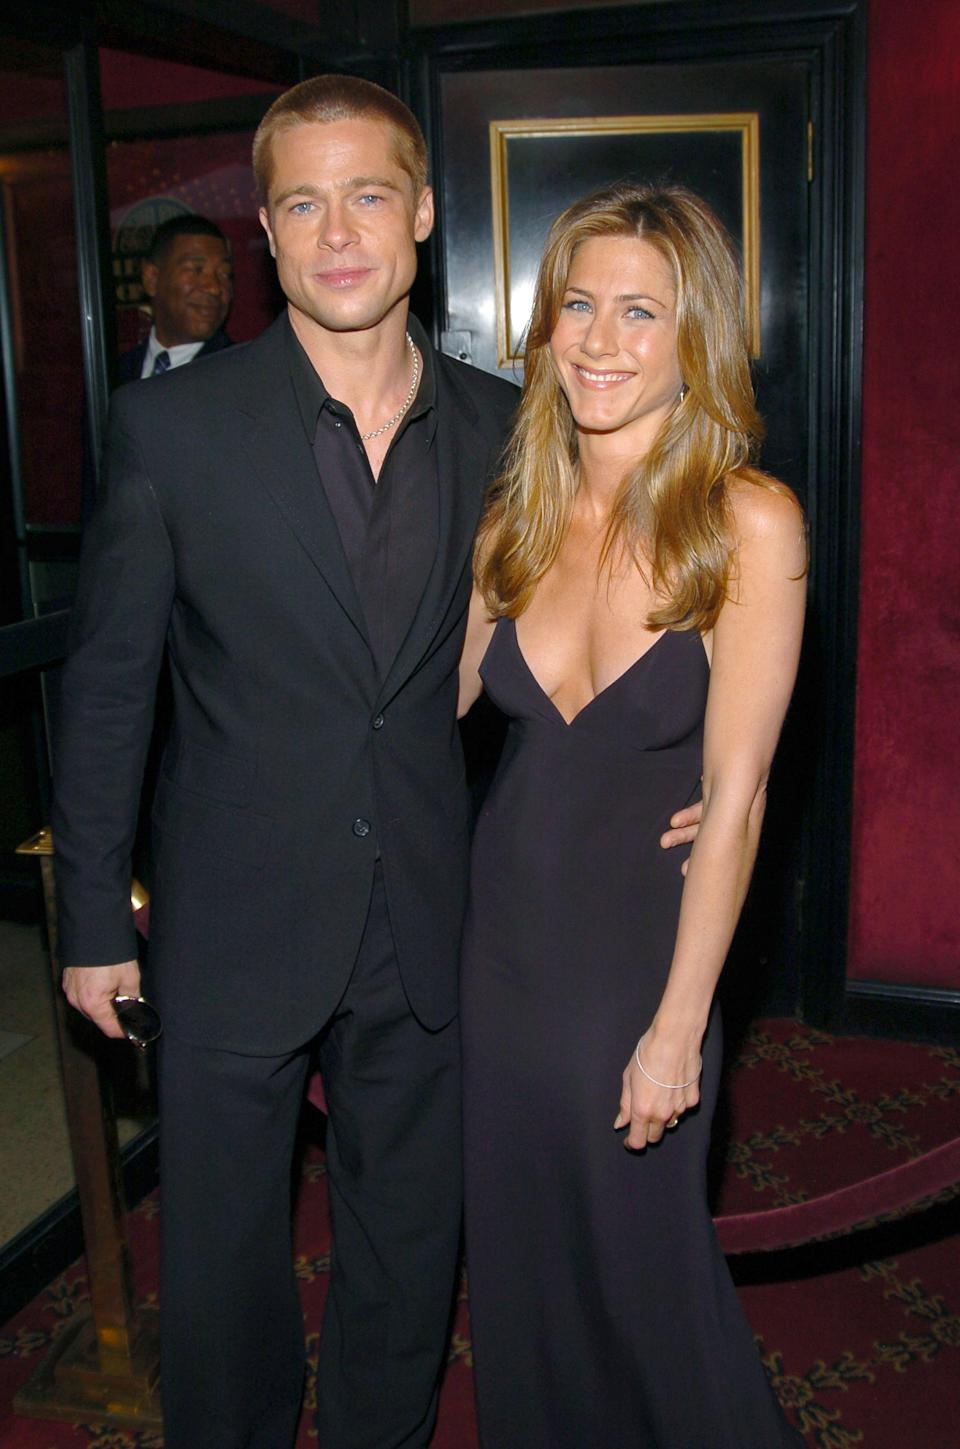 <p>It seemed like a match made in heaven: the biggest name in film marries the most famous woman on television. Pitt and Aniston were set up by their agents in 1998 before tying the knot in Malibu two years later. Alas, it wasn't meant to be for the pair - who went on to have one of the most highly publicized splits in Hollywood history. <em>(Image via Getty Images)</em></p>